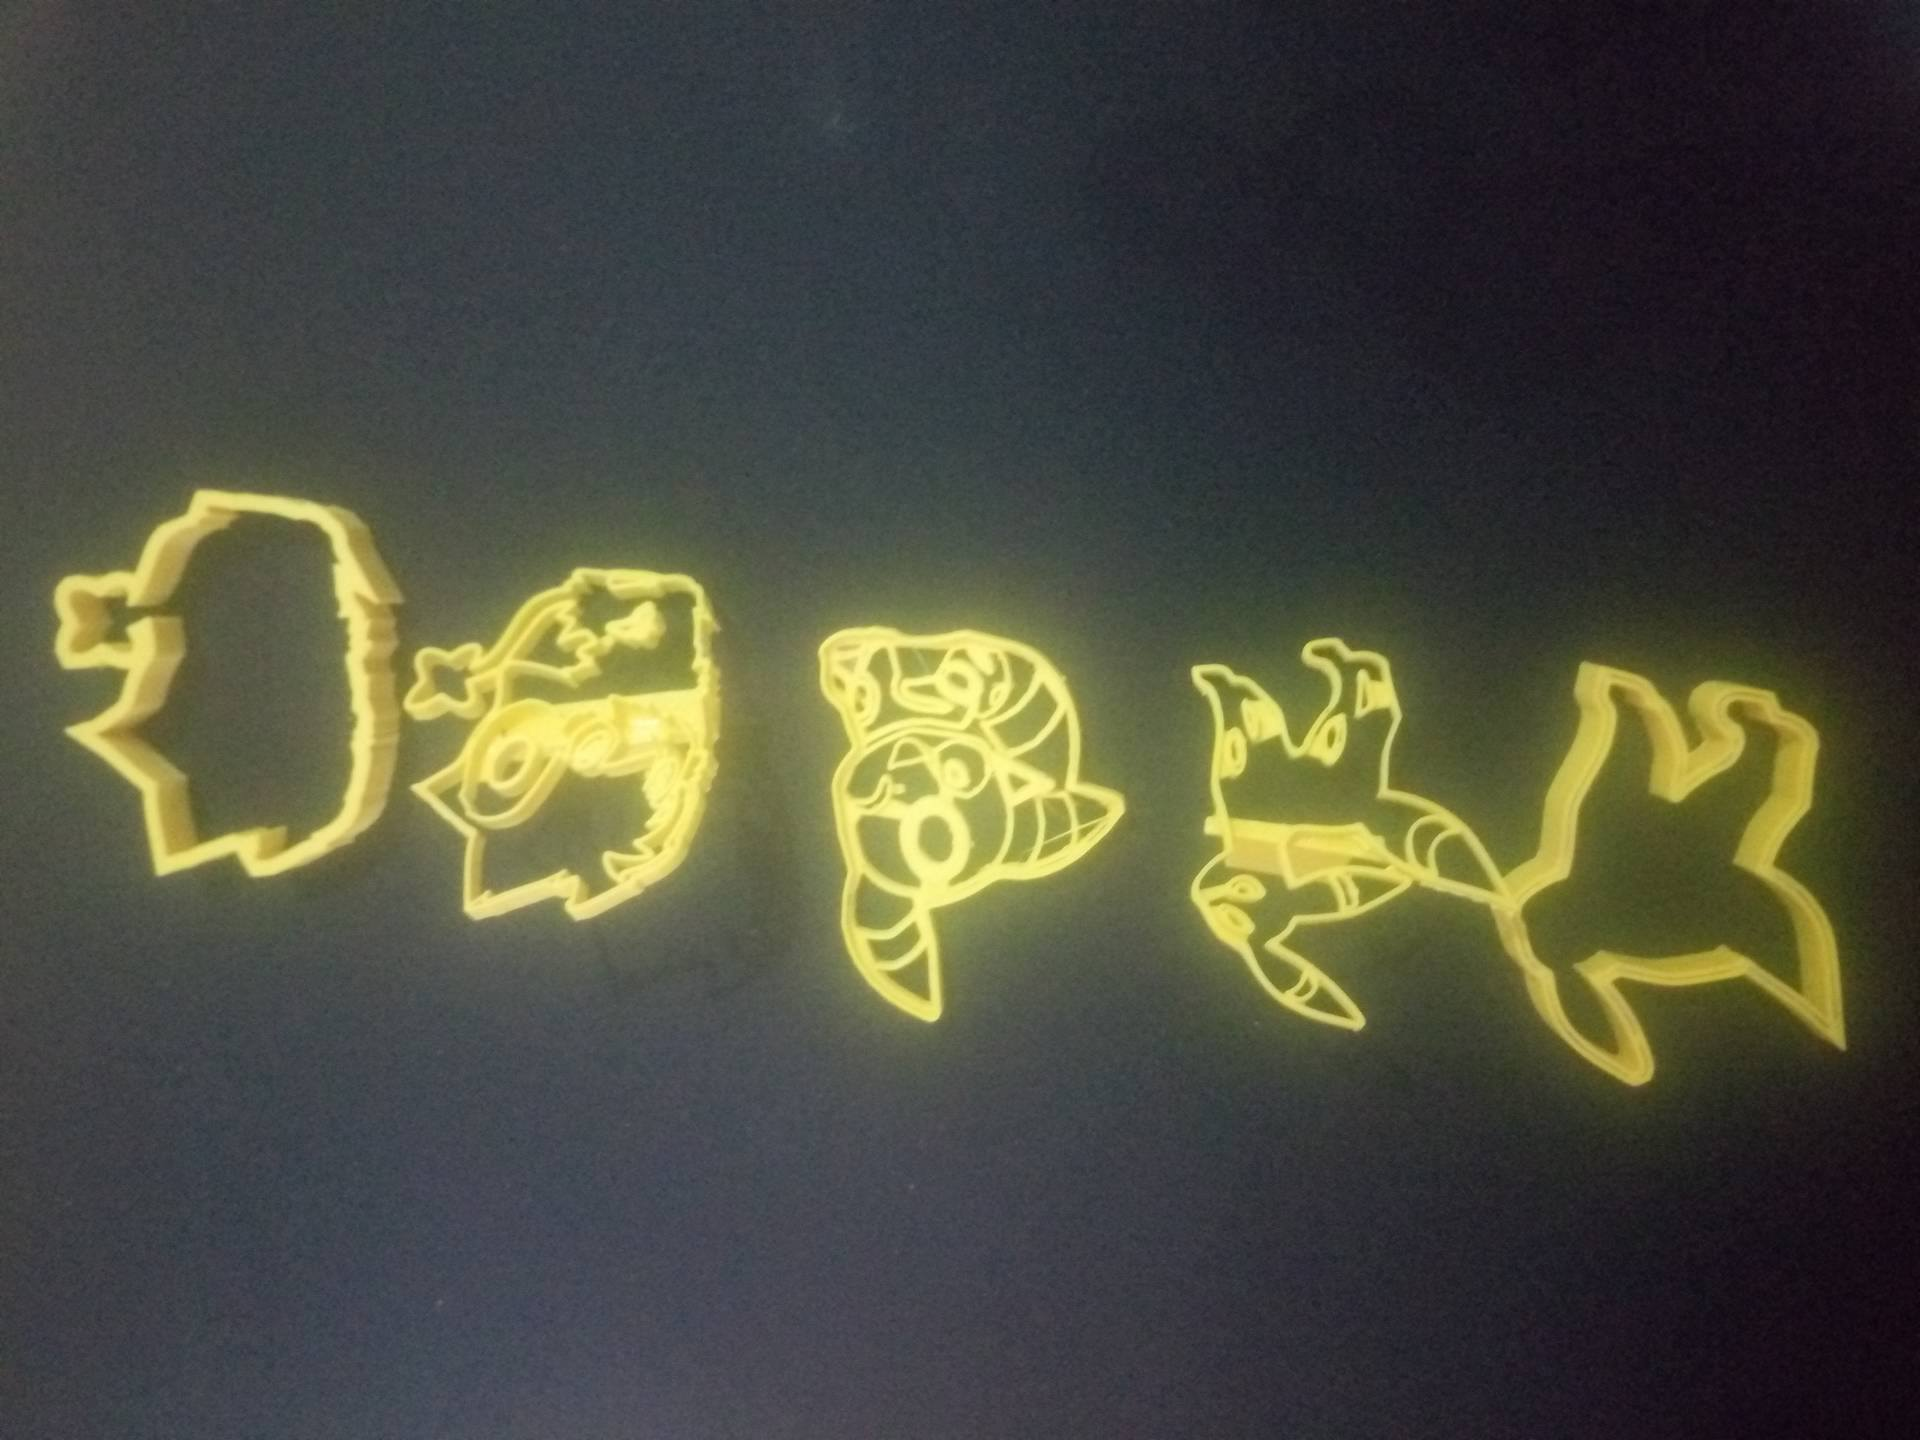 22751427_10214500617566381_1837893331_o.jpg Download free STL file Pokemon go Cookies cutter • Object to 3D print, AmineZed